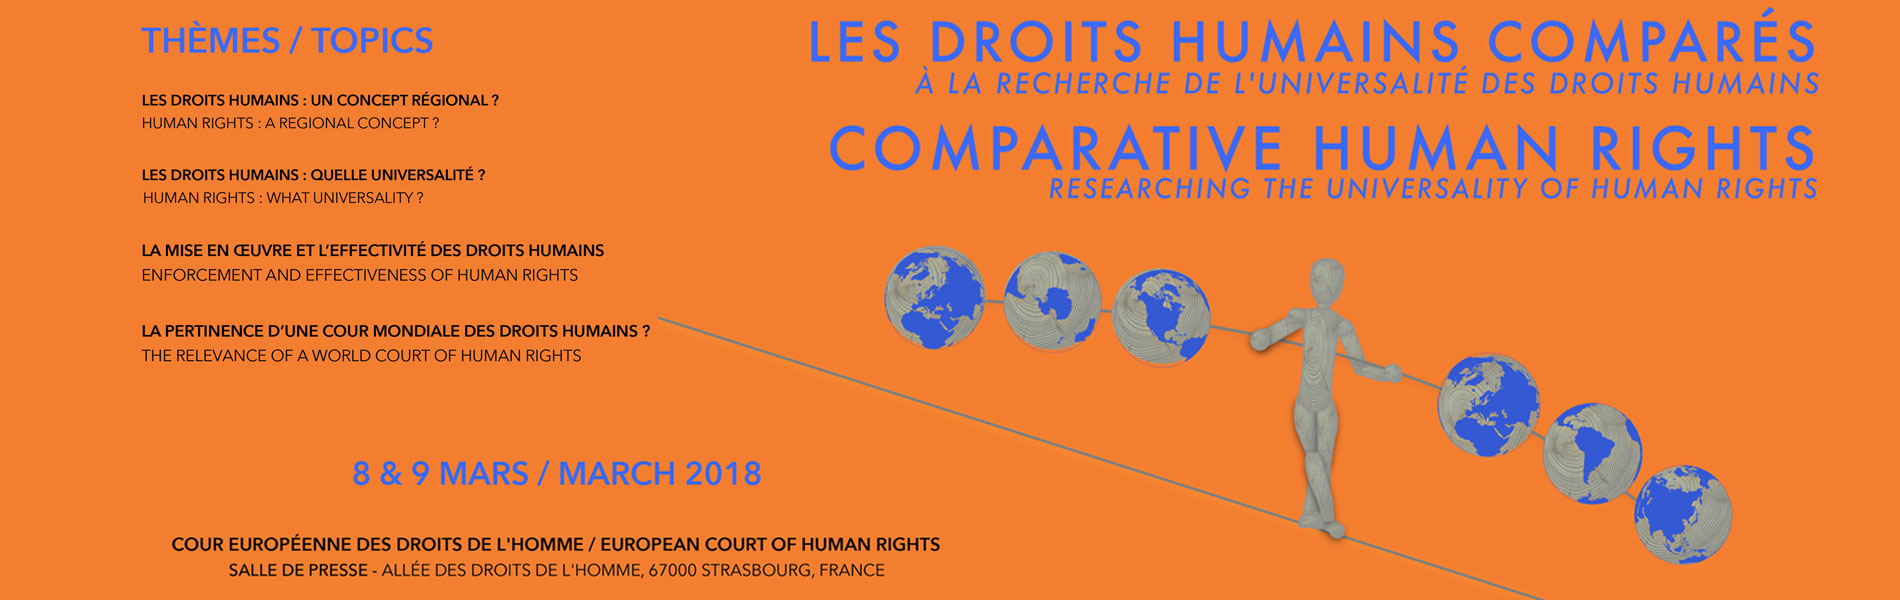 Conferences on Comparative Human Rights